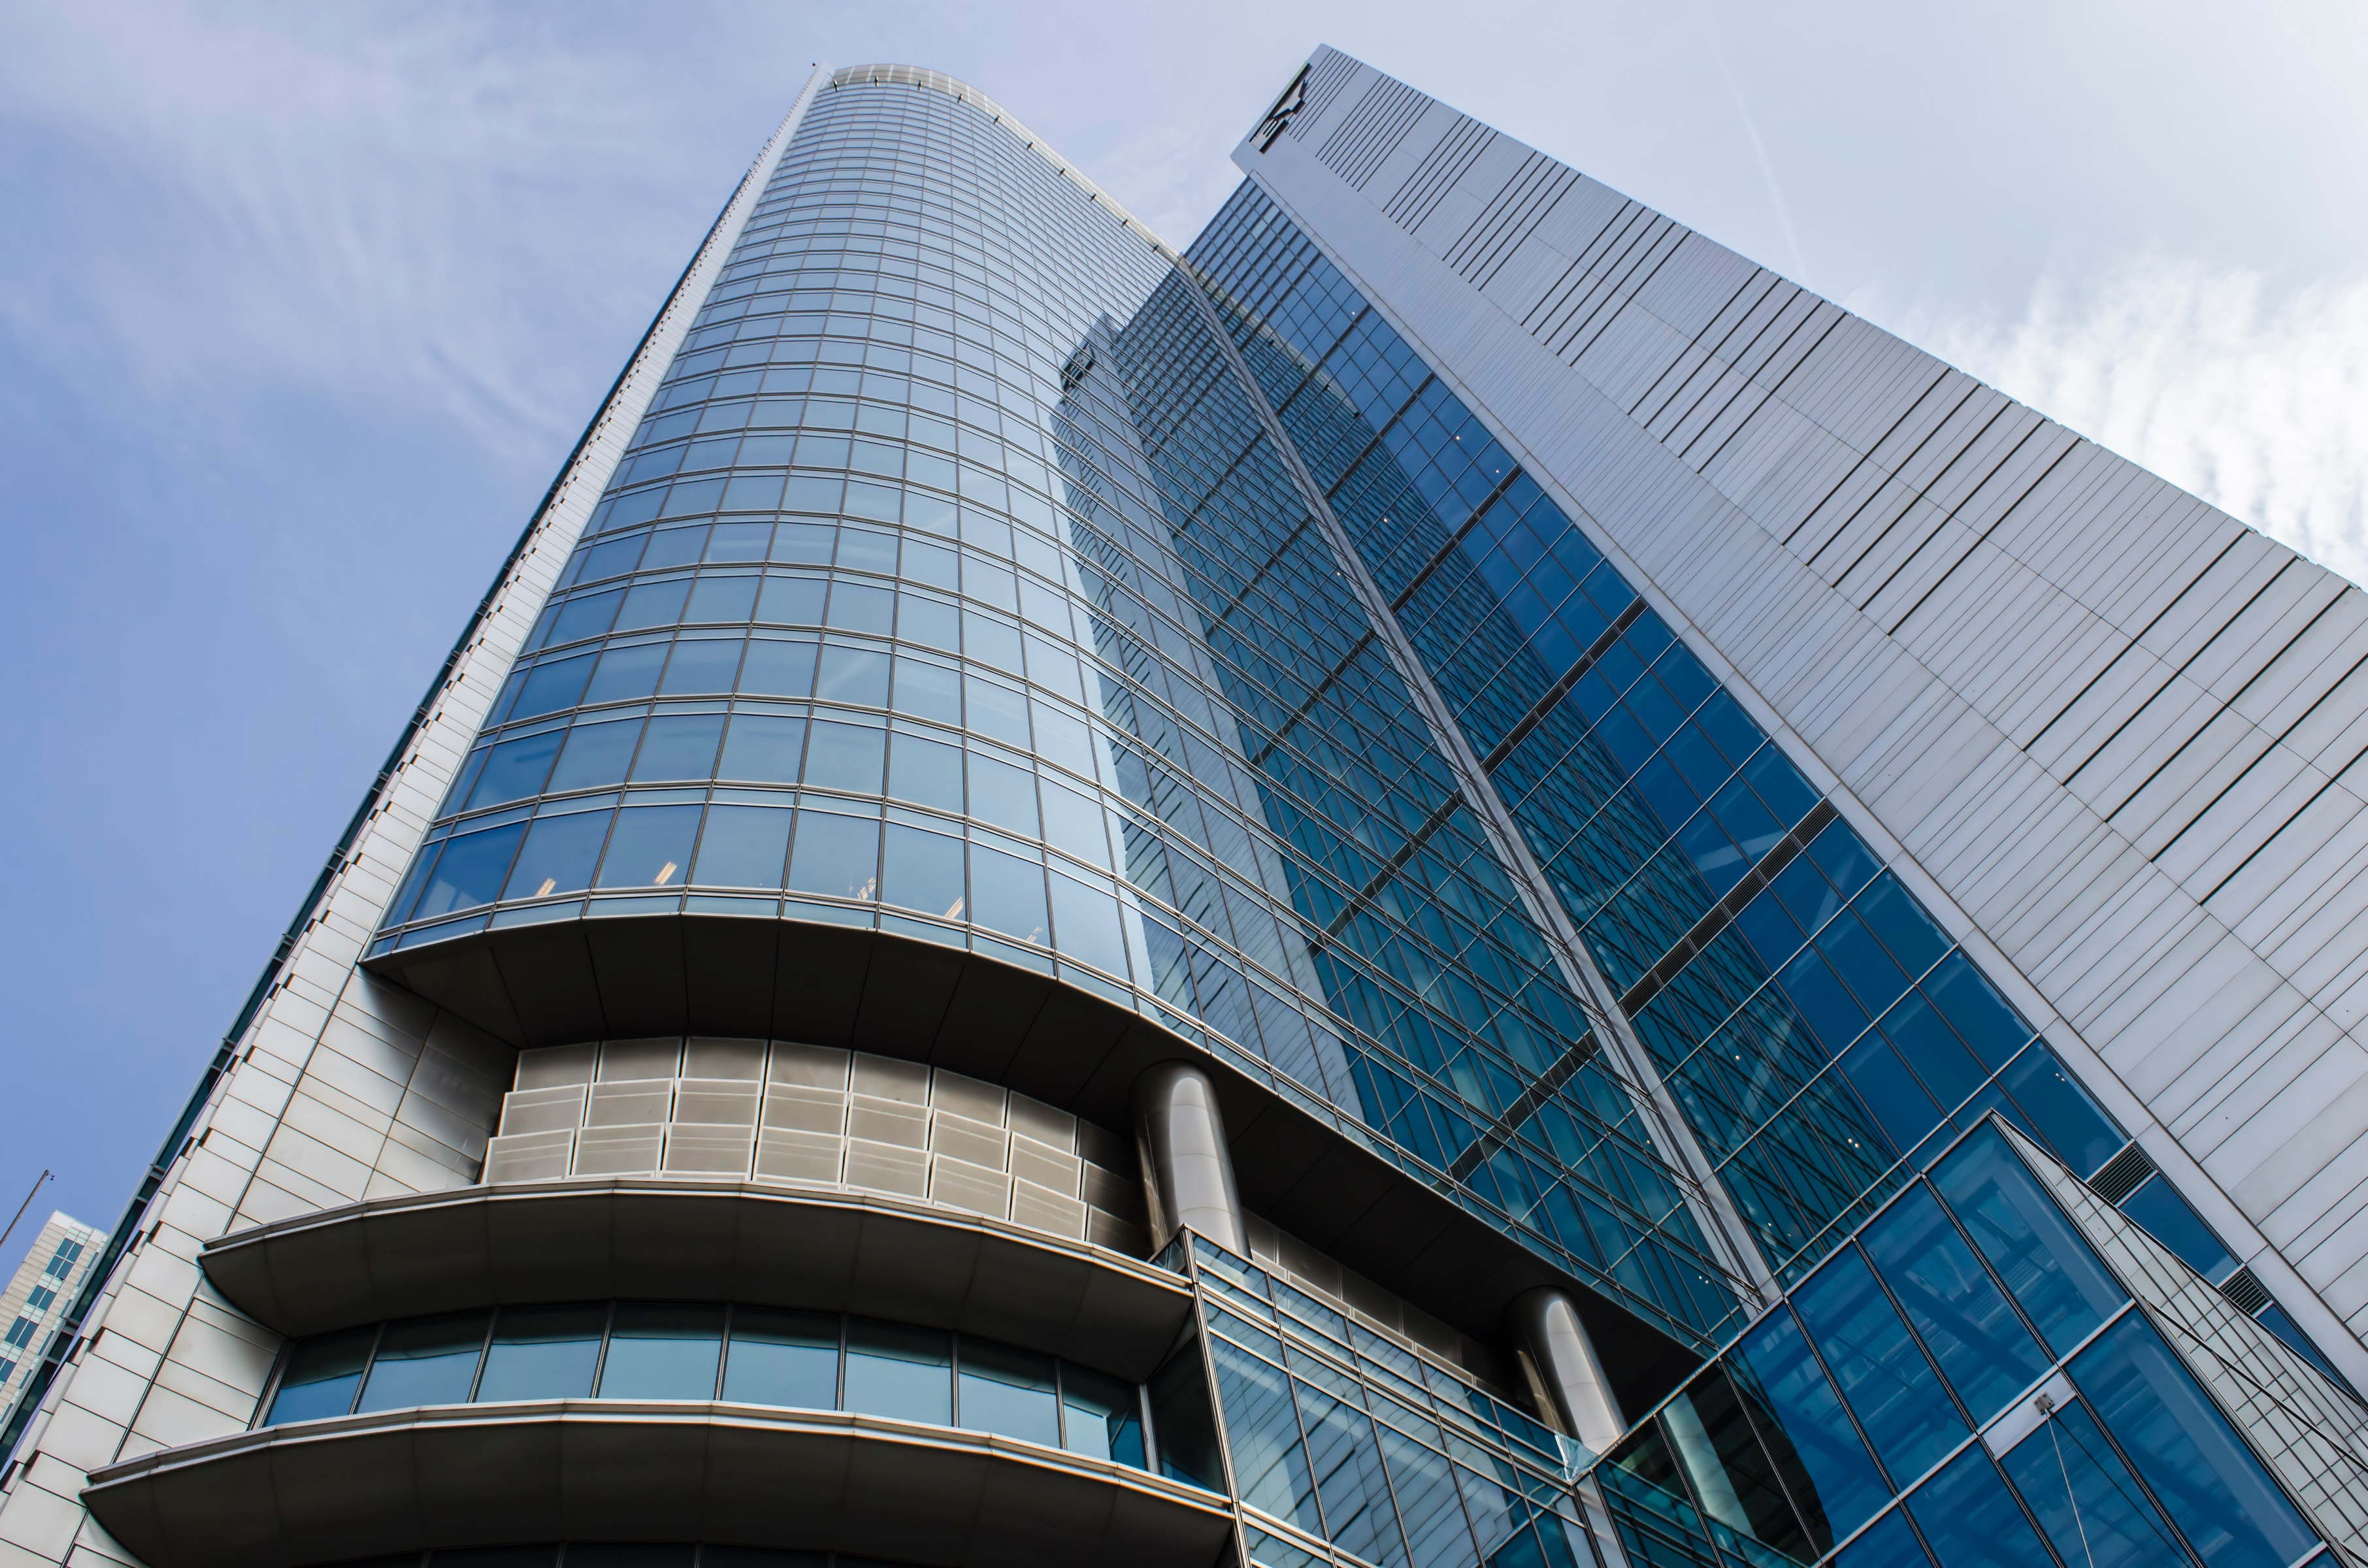 Low Angle View of High-rise Building, Architectural design, Modern, Urban, Tower, HQ Photo